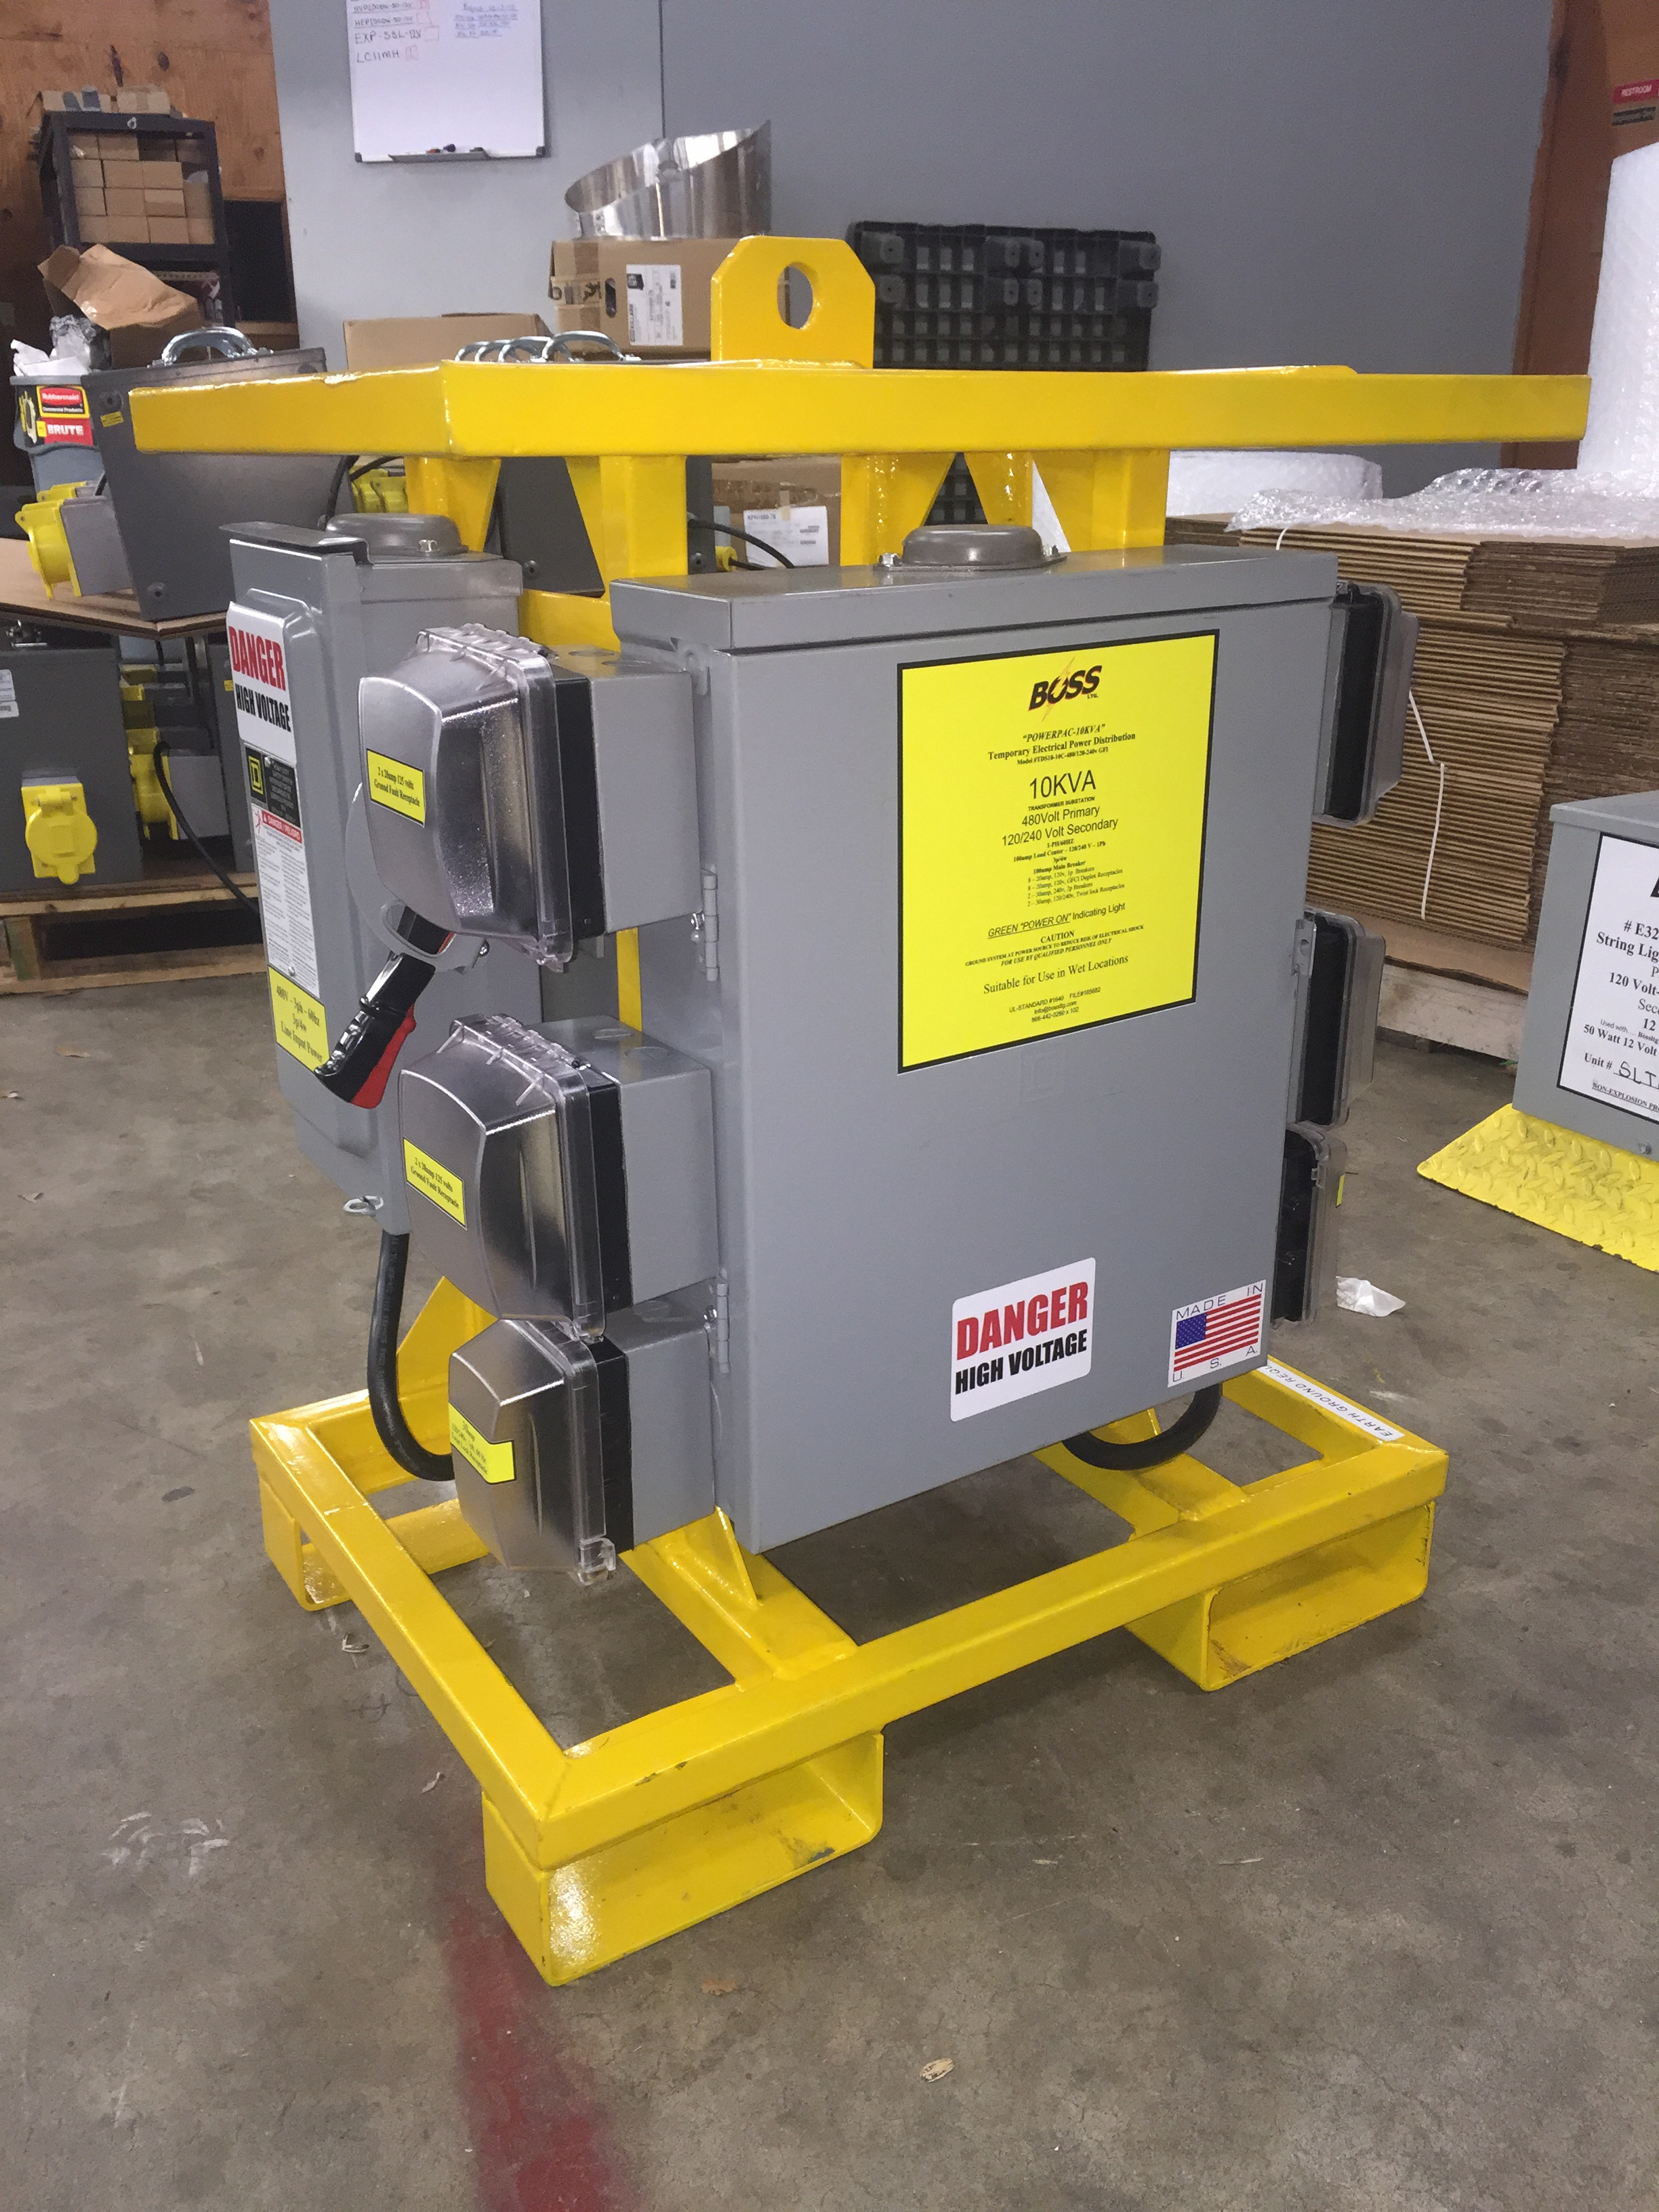 UL1640 CERTIFIED- TDS10/10C/480-120V/240V 10kva Transformer, 480v to 120v GFCI -240v Twistlock.  Rental Rate: $650.00 per month,  Request Quote for Discount